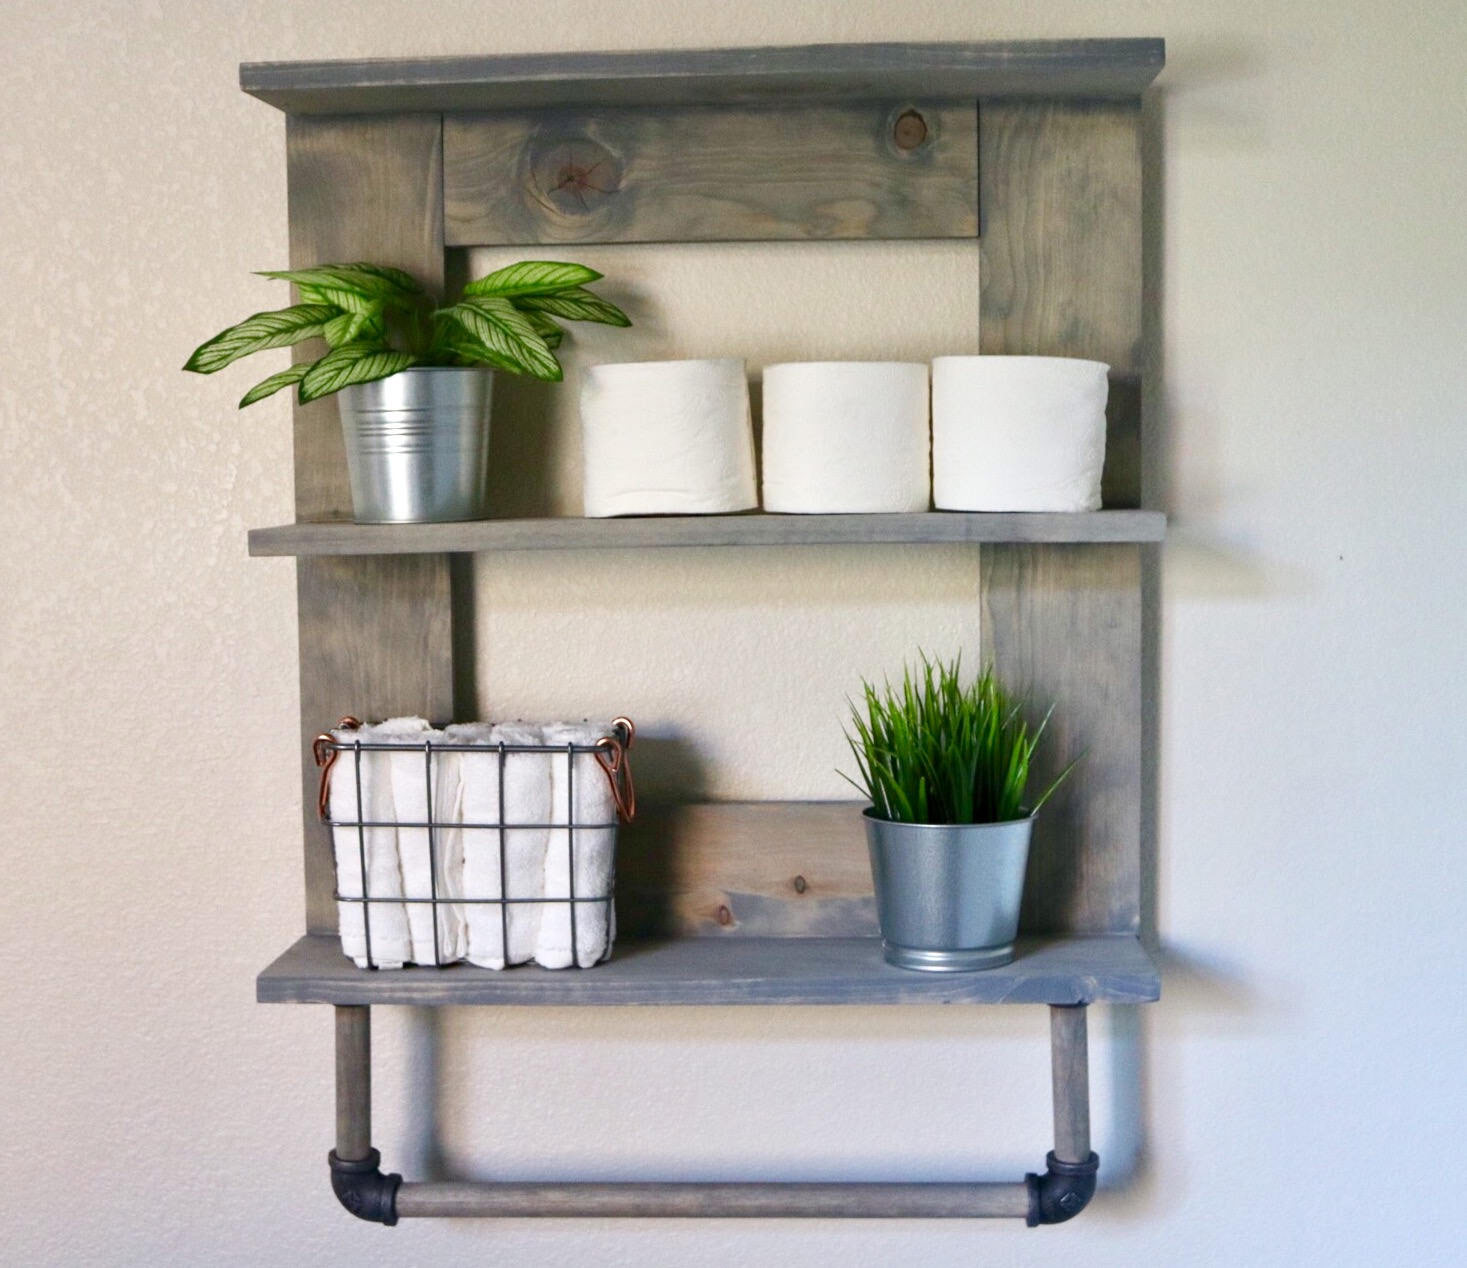 Towel Rack and Bathroom Organizer